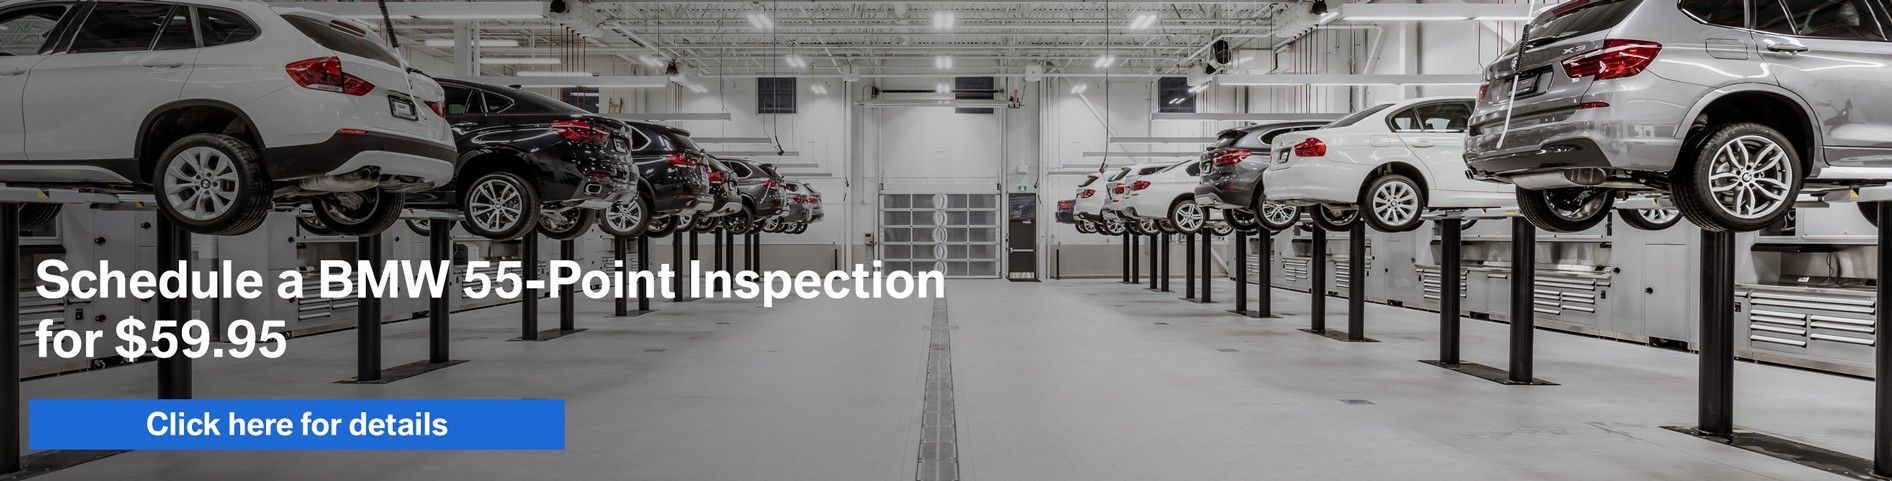 Schedule a BMW 55-Point Inspection for $59.95, click here for details